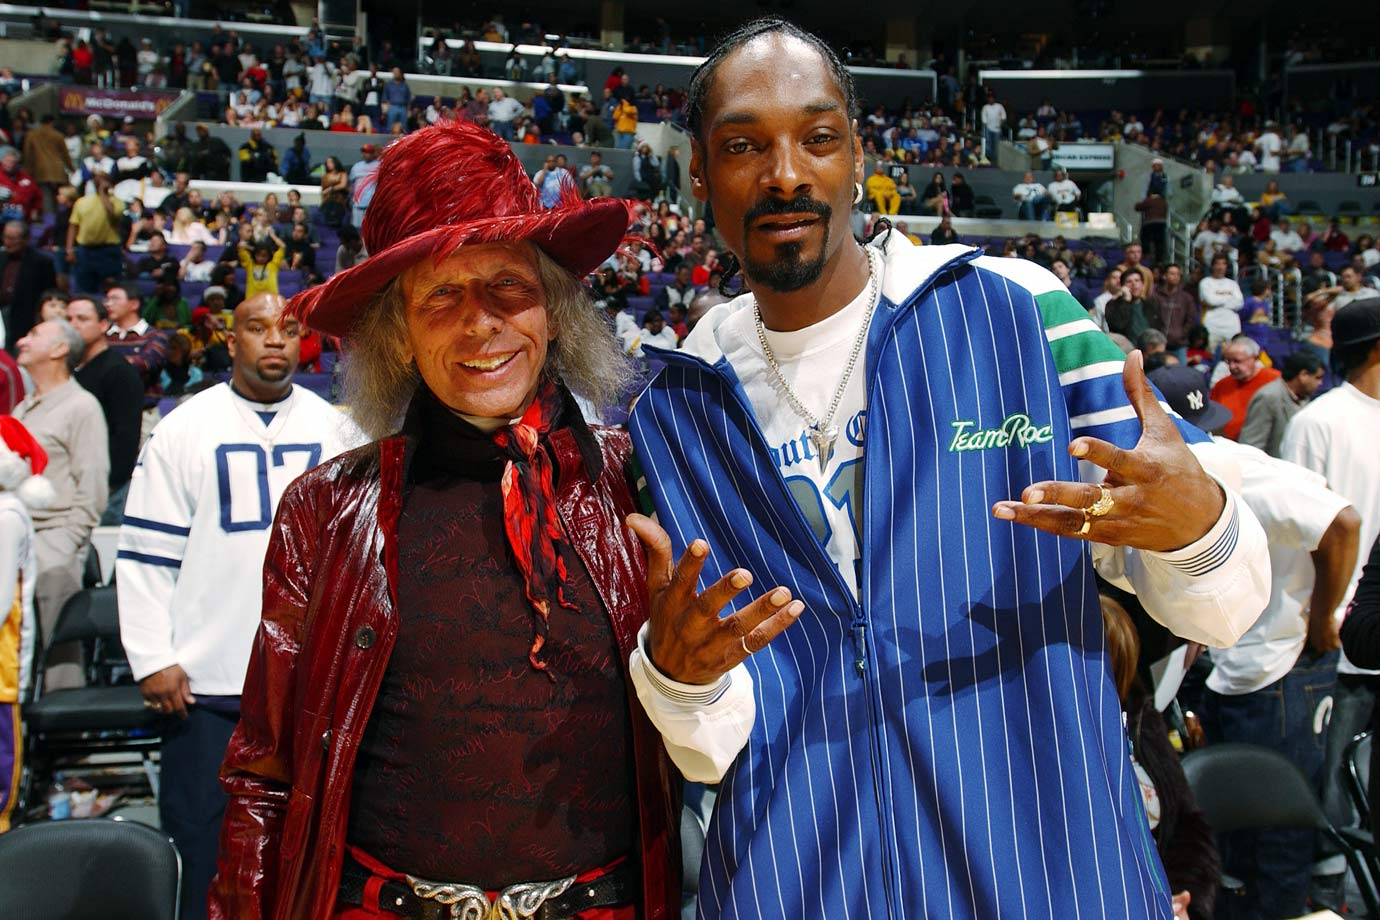 James Goldstein and Snoop Dogg pose together during the Los Angeles Lakers game against the Miami Heat on Dec. 25, 2004 at Staples Center in Los Angeles.